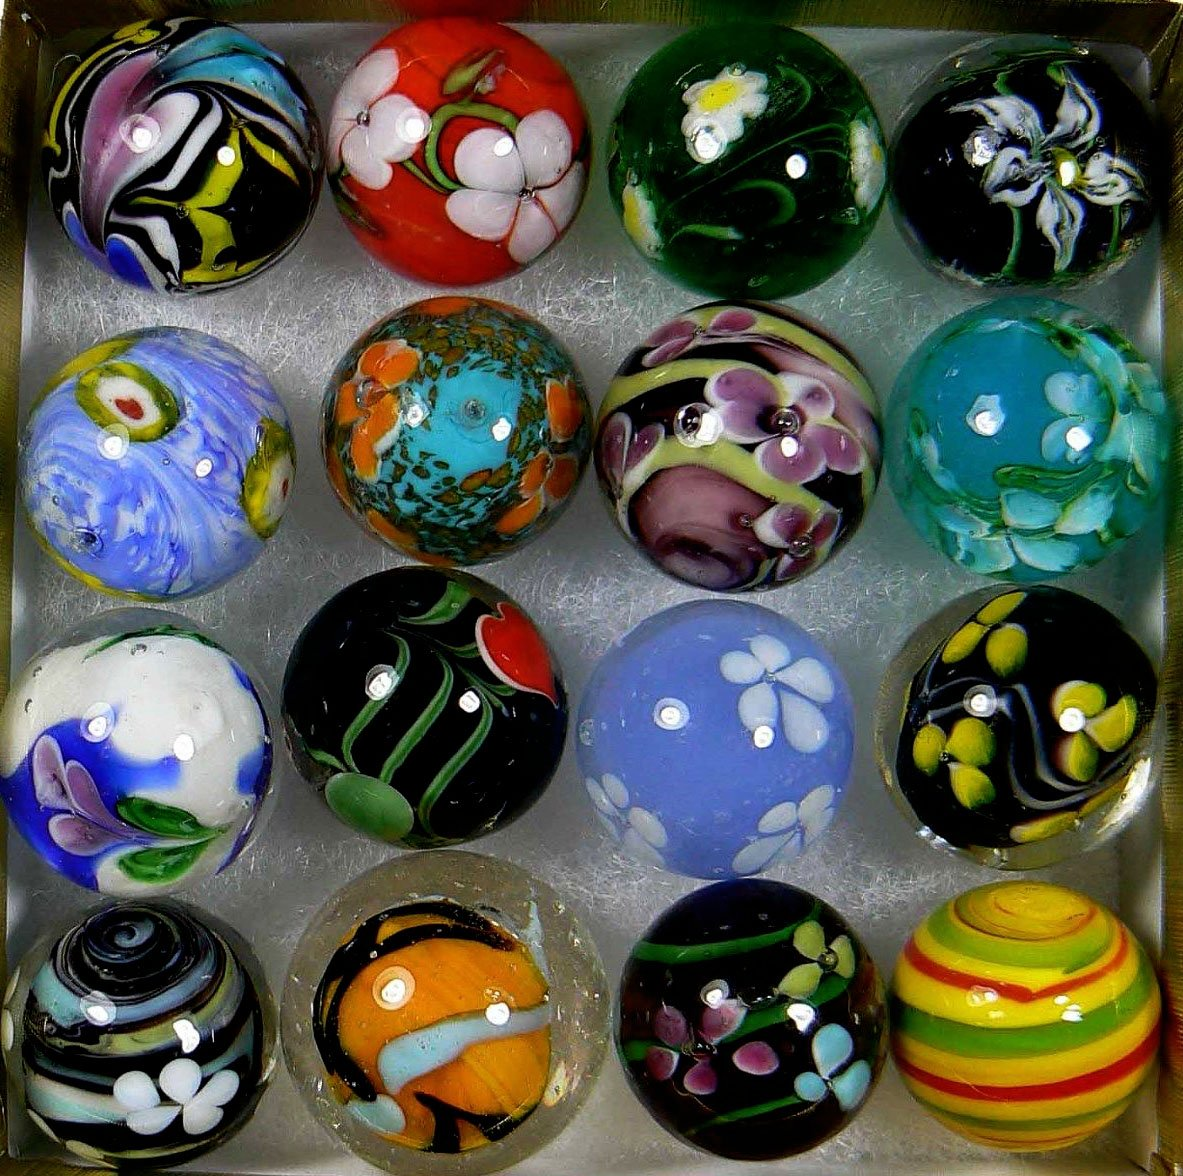 """Unique & Custom {7/8"""" Inch} Set of 16 Large """"Round"""" Opaque Marbles Made of Glass for Filling Vases, Games & Decor w/ Spiral Handmade Floral Design [Assorted Colors] w/ Shooter & Collectors Box"""